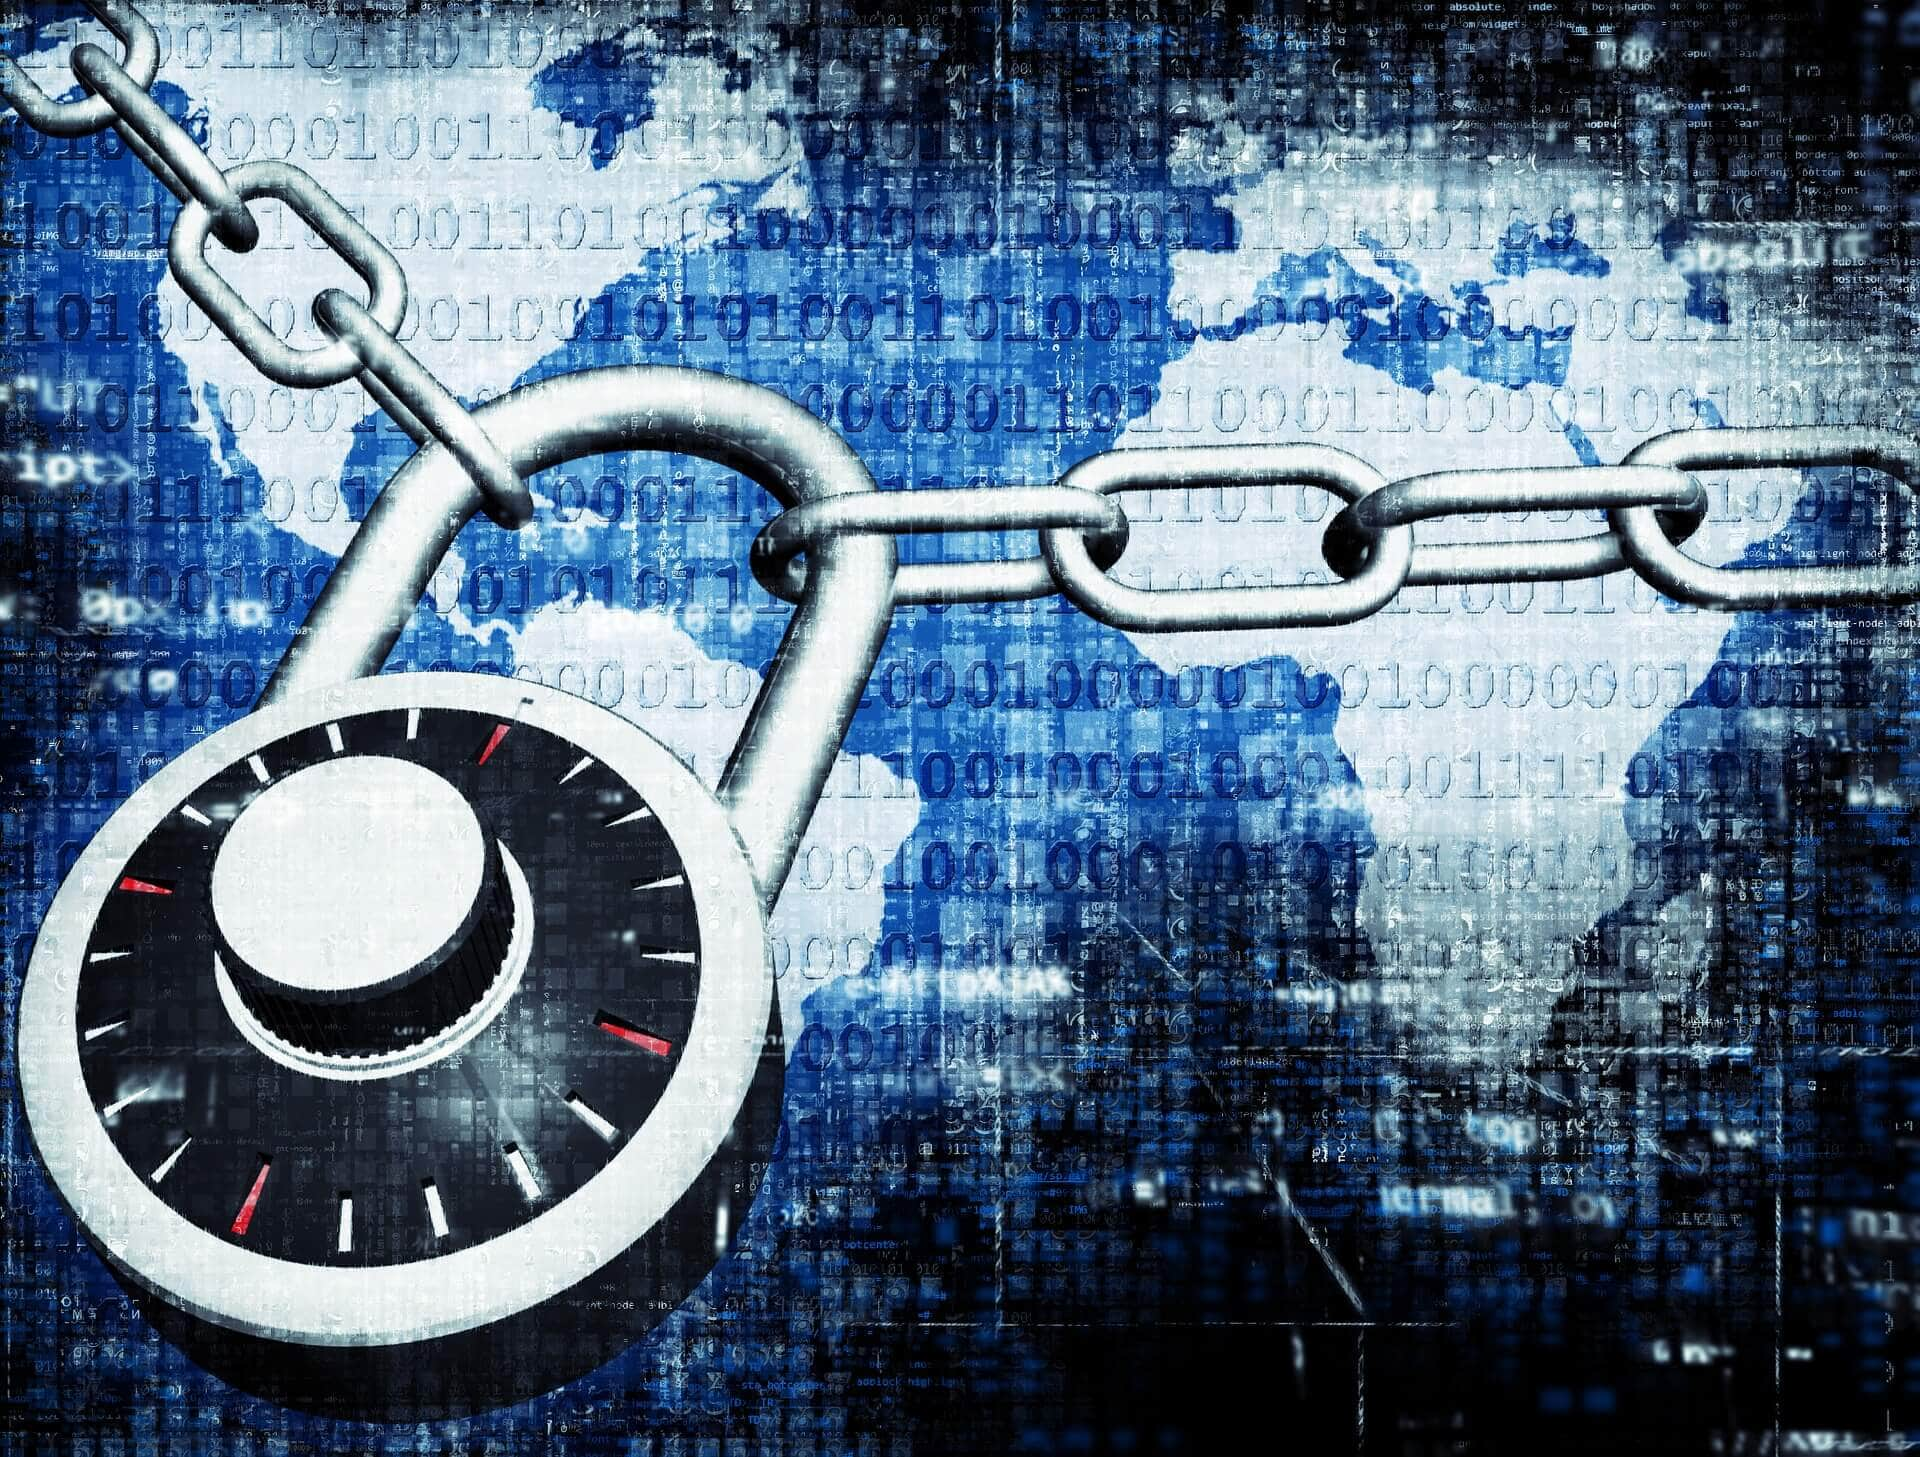 content/nl-nl/images/repository/isc/2020/how-to-protect-your-internet-privacy.jpg